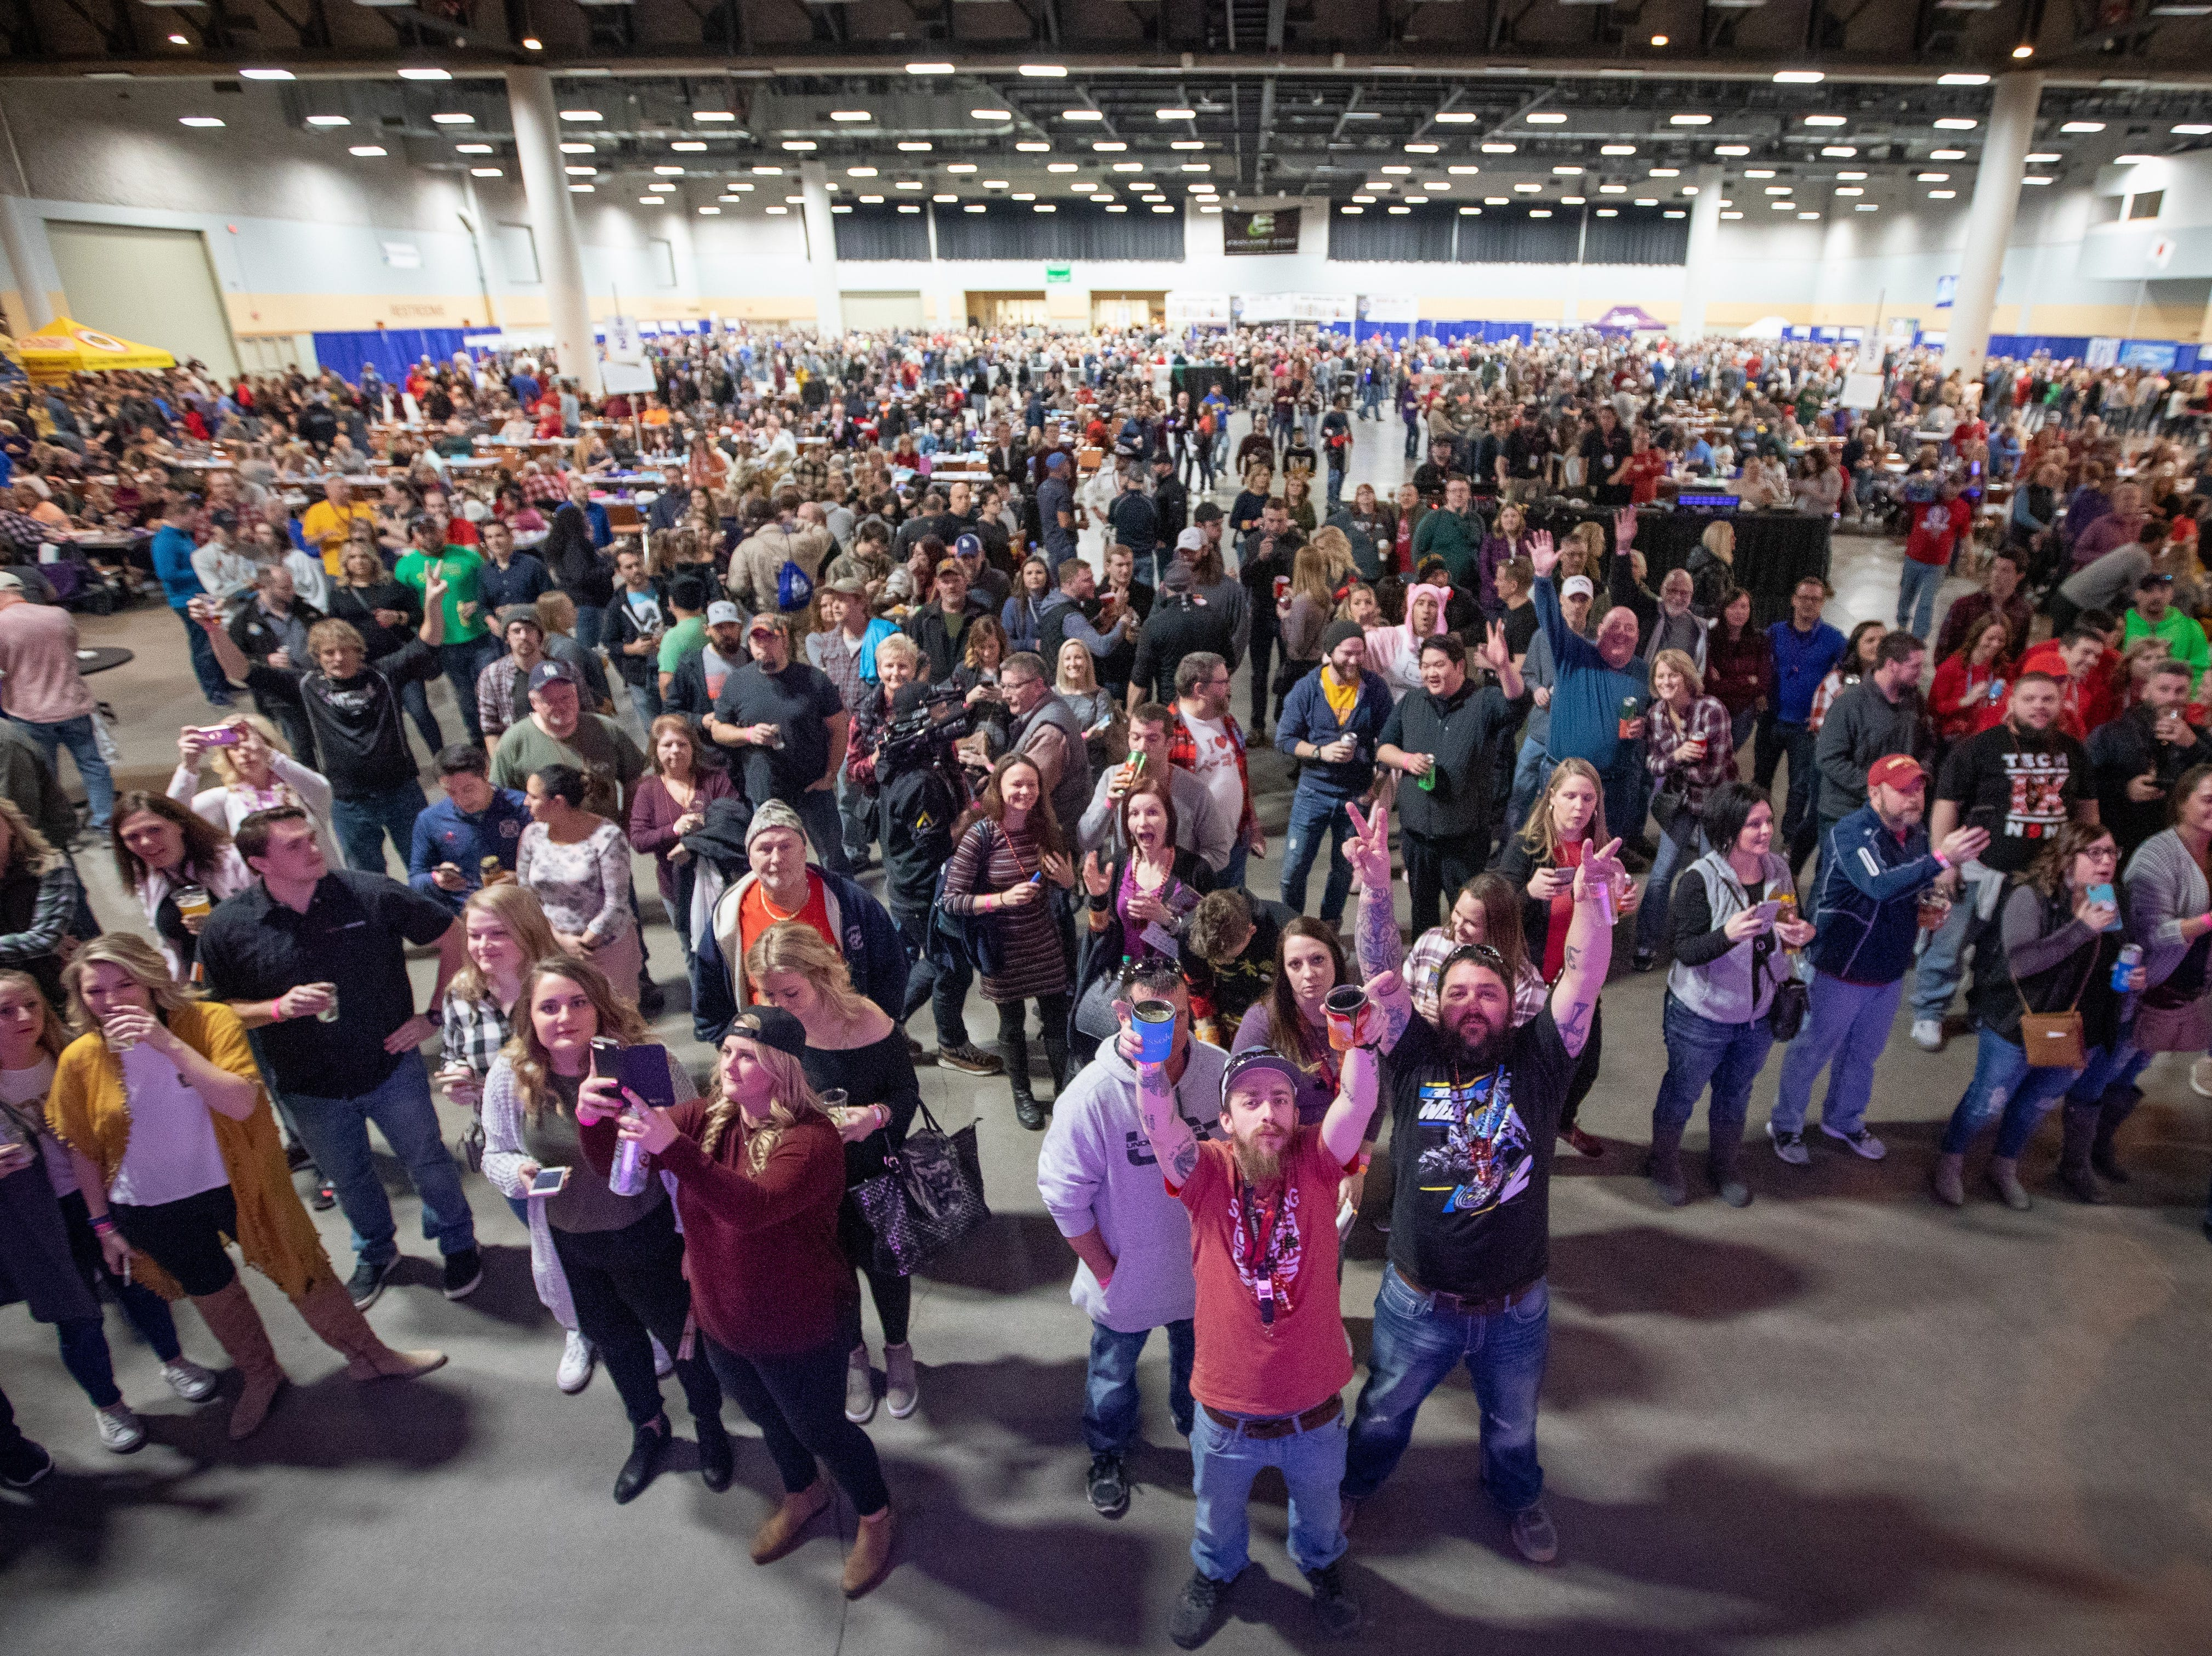 A general view of the crowd during the Bacon Fest at Hy-Vee Hall on Feb. 16, 2019 in Des Moines, Iowa.